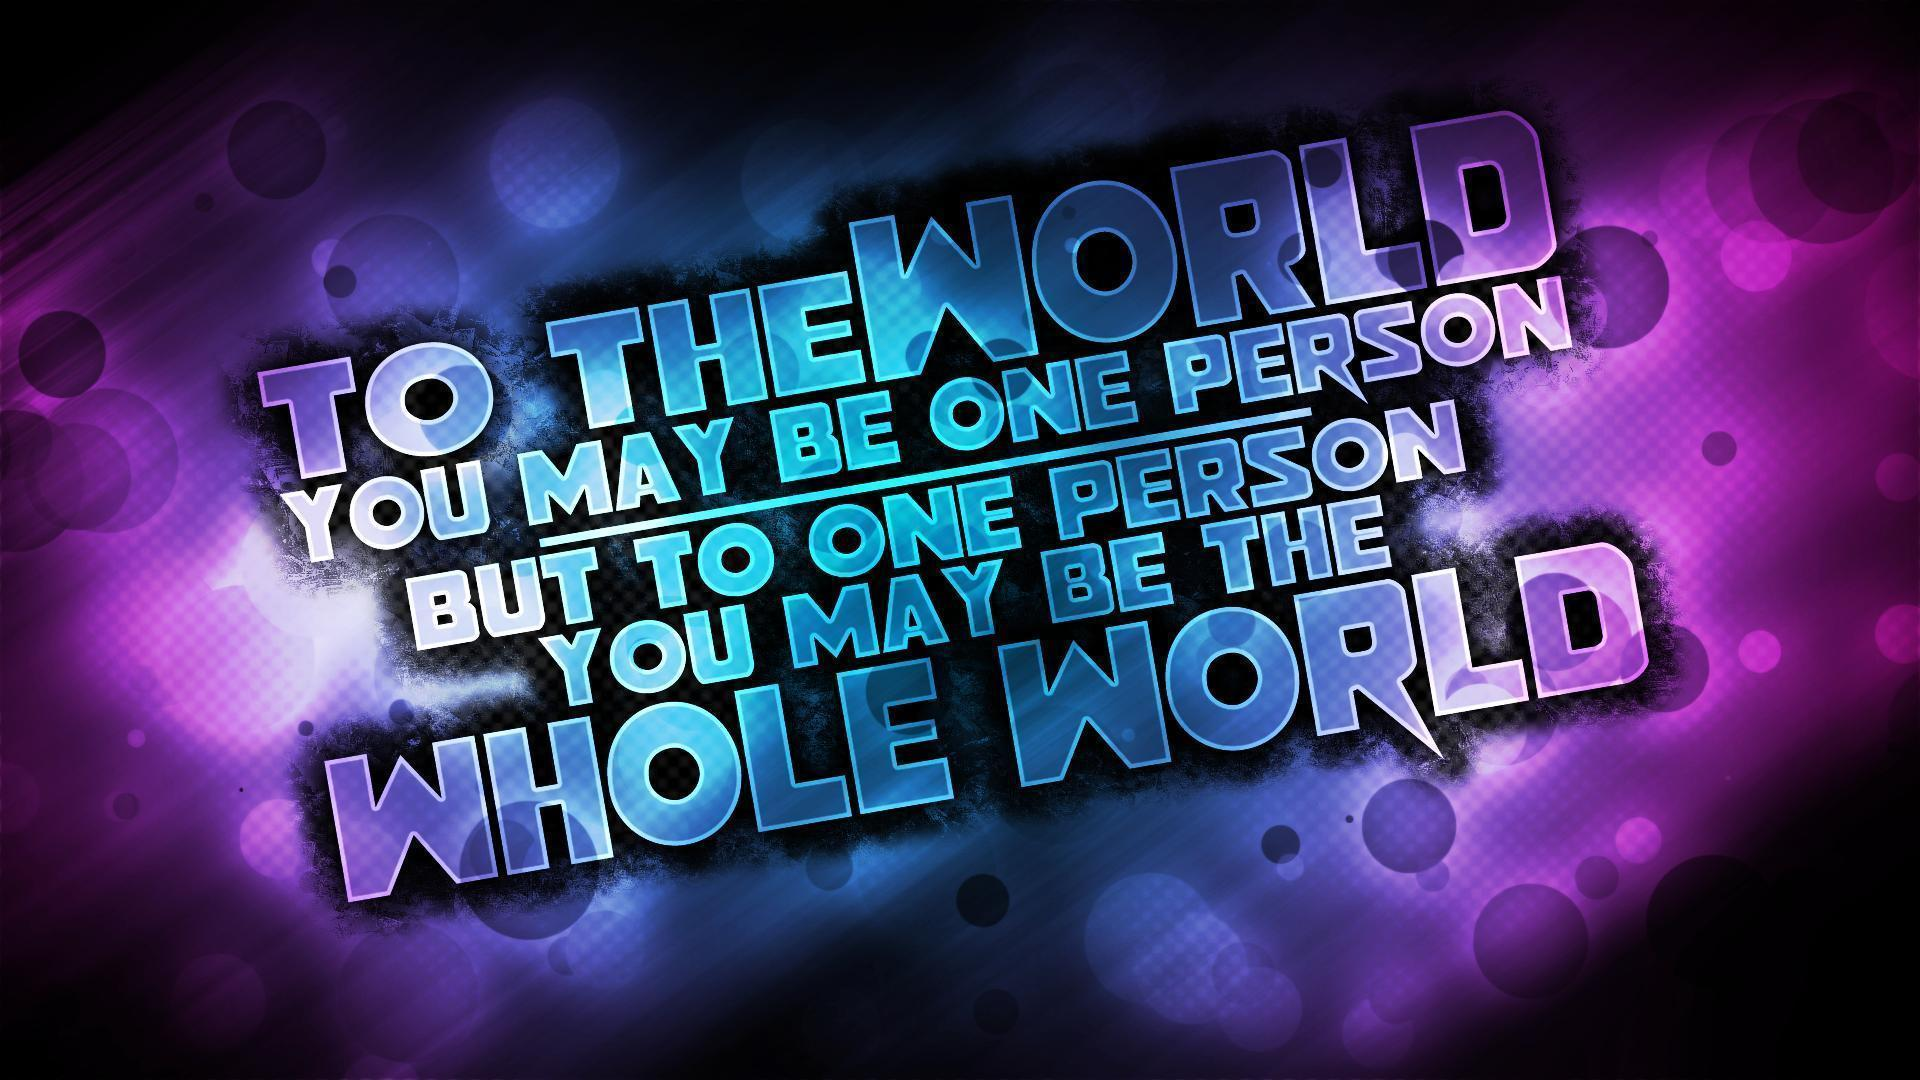 3d Quotes About Love : Ultra Love Quote Free Wallpaper #6054 Wallpaper computer best ...